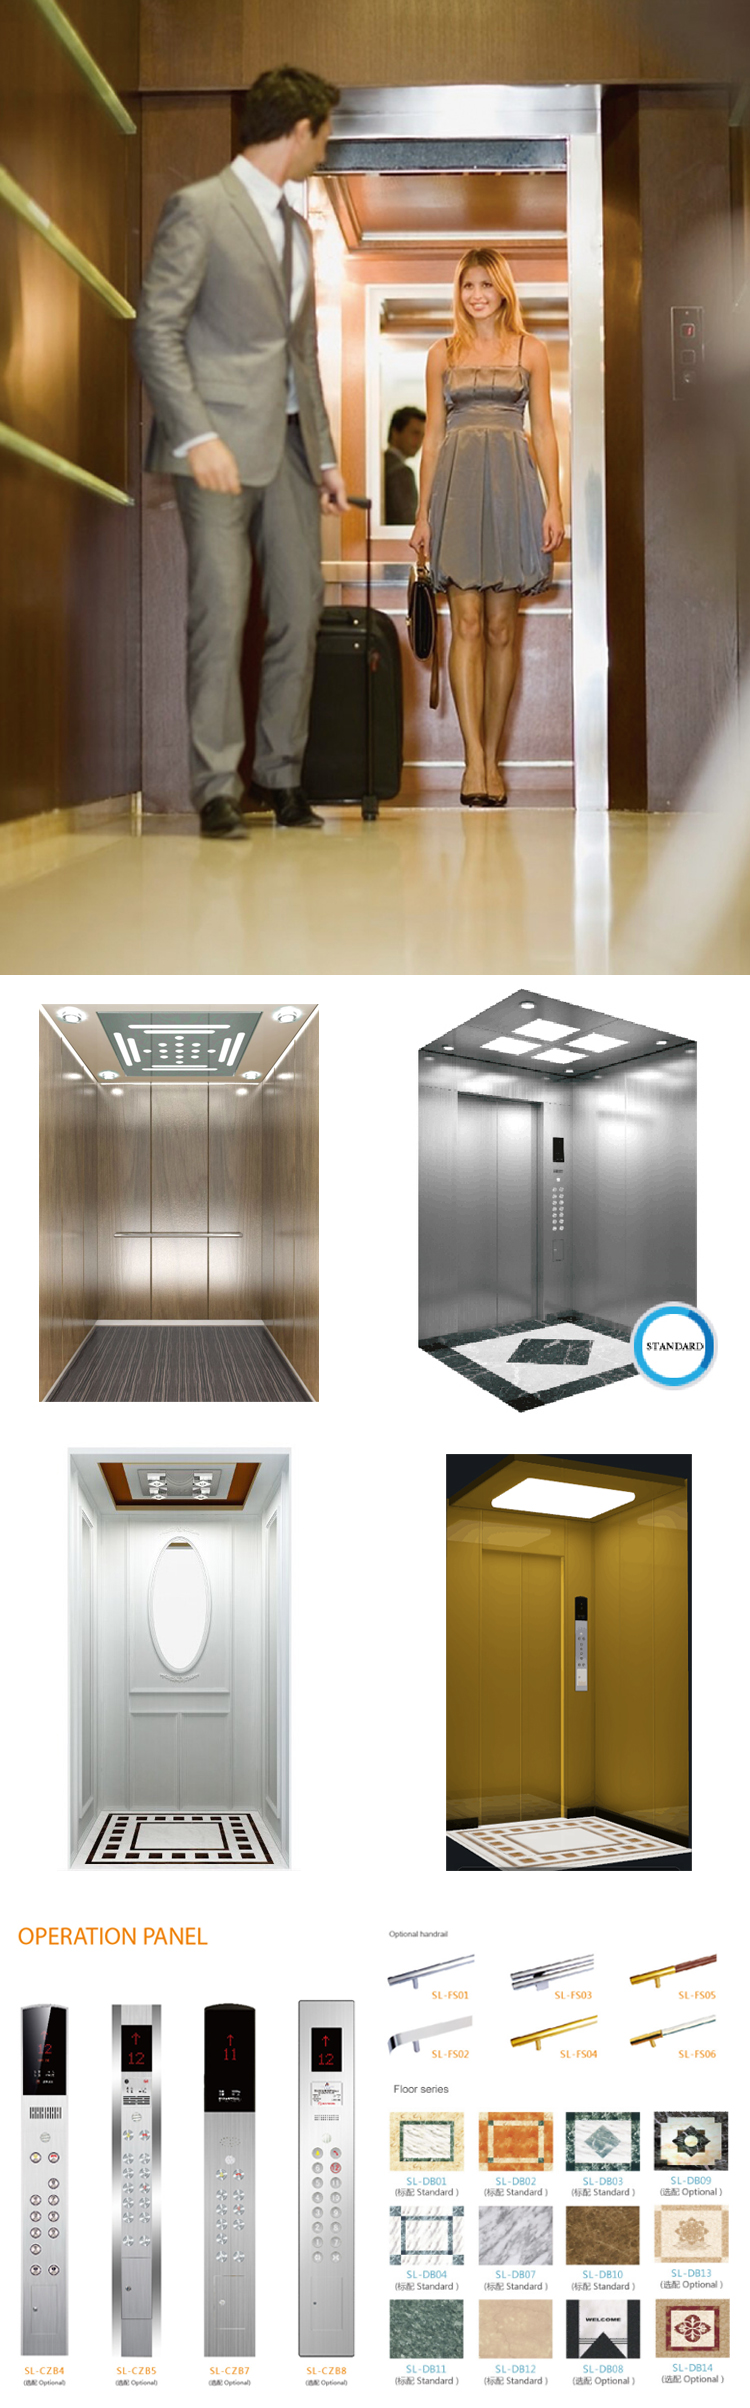 Used residential home elevators kits for sale buy Home elevator kits